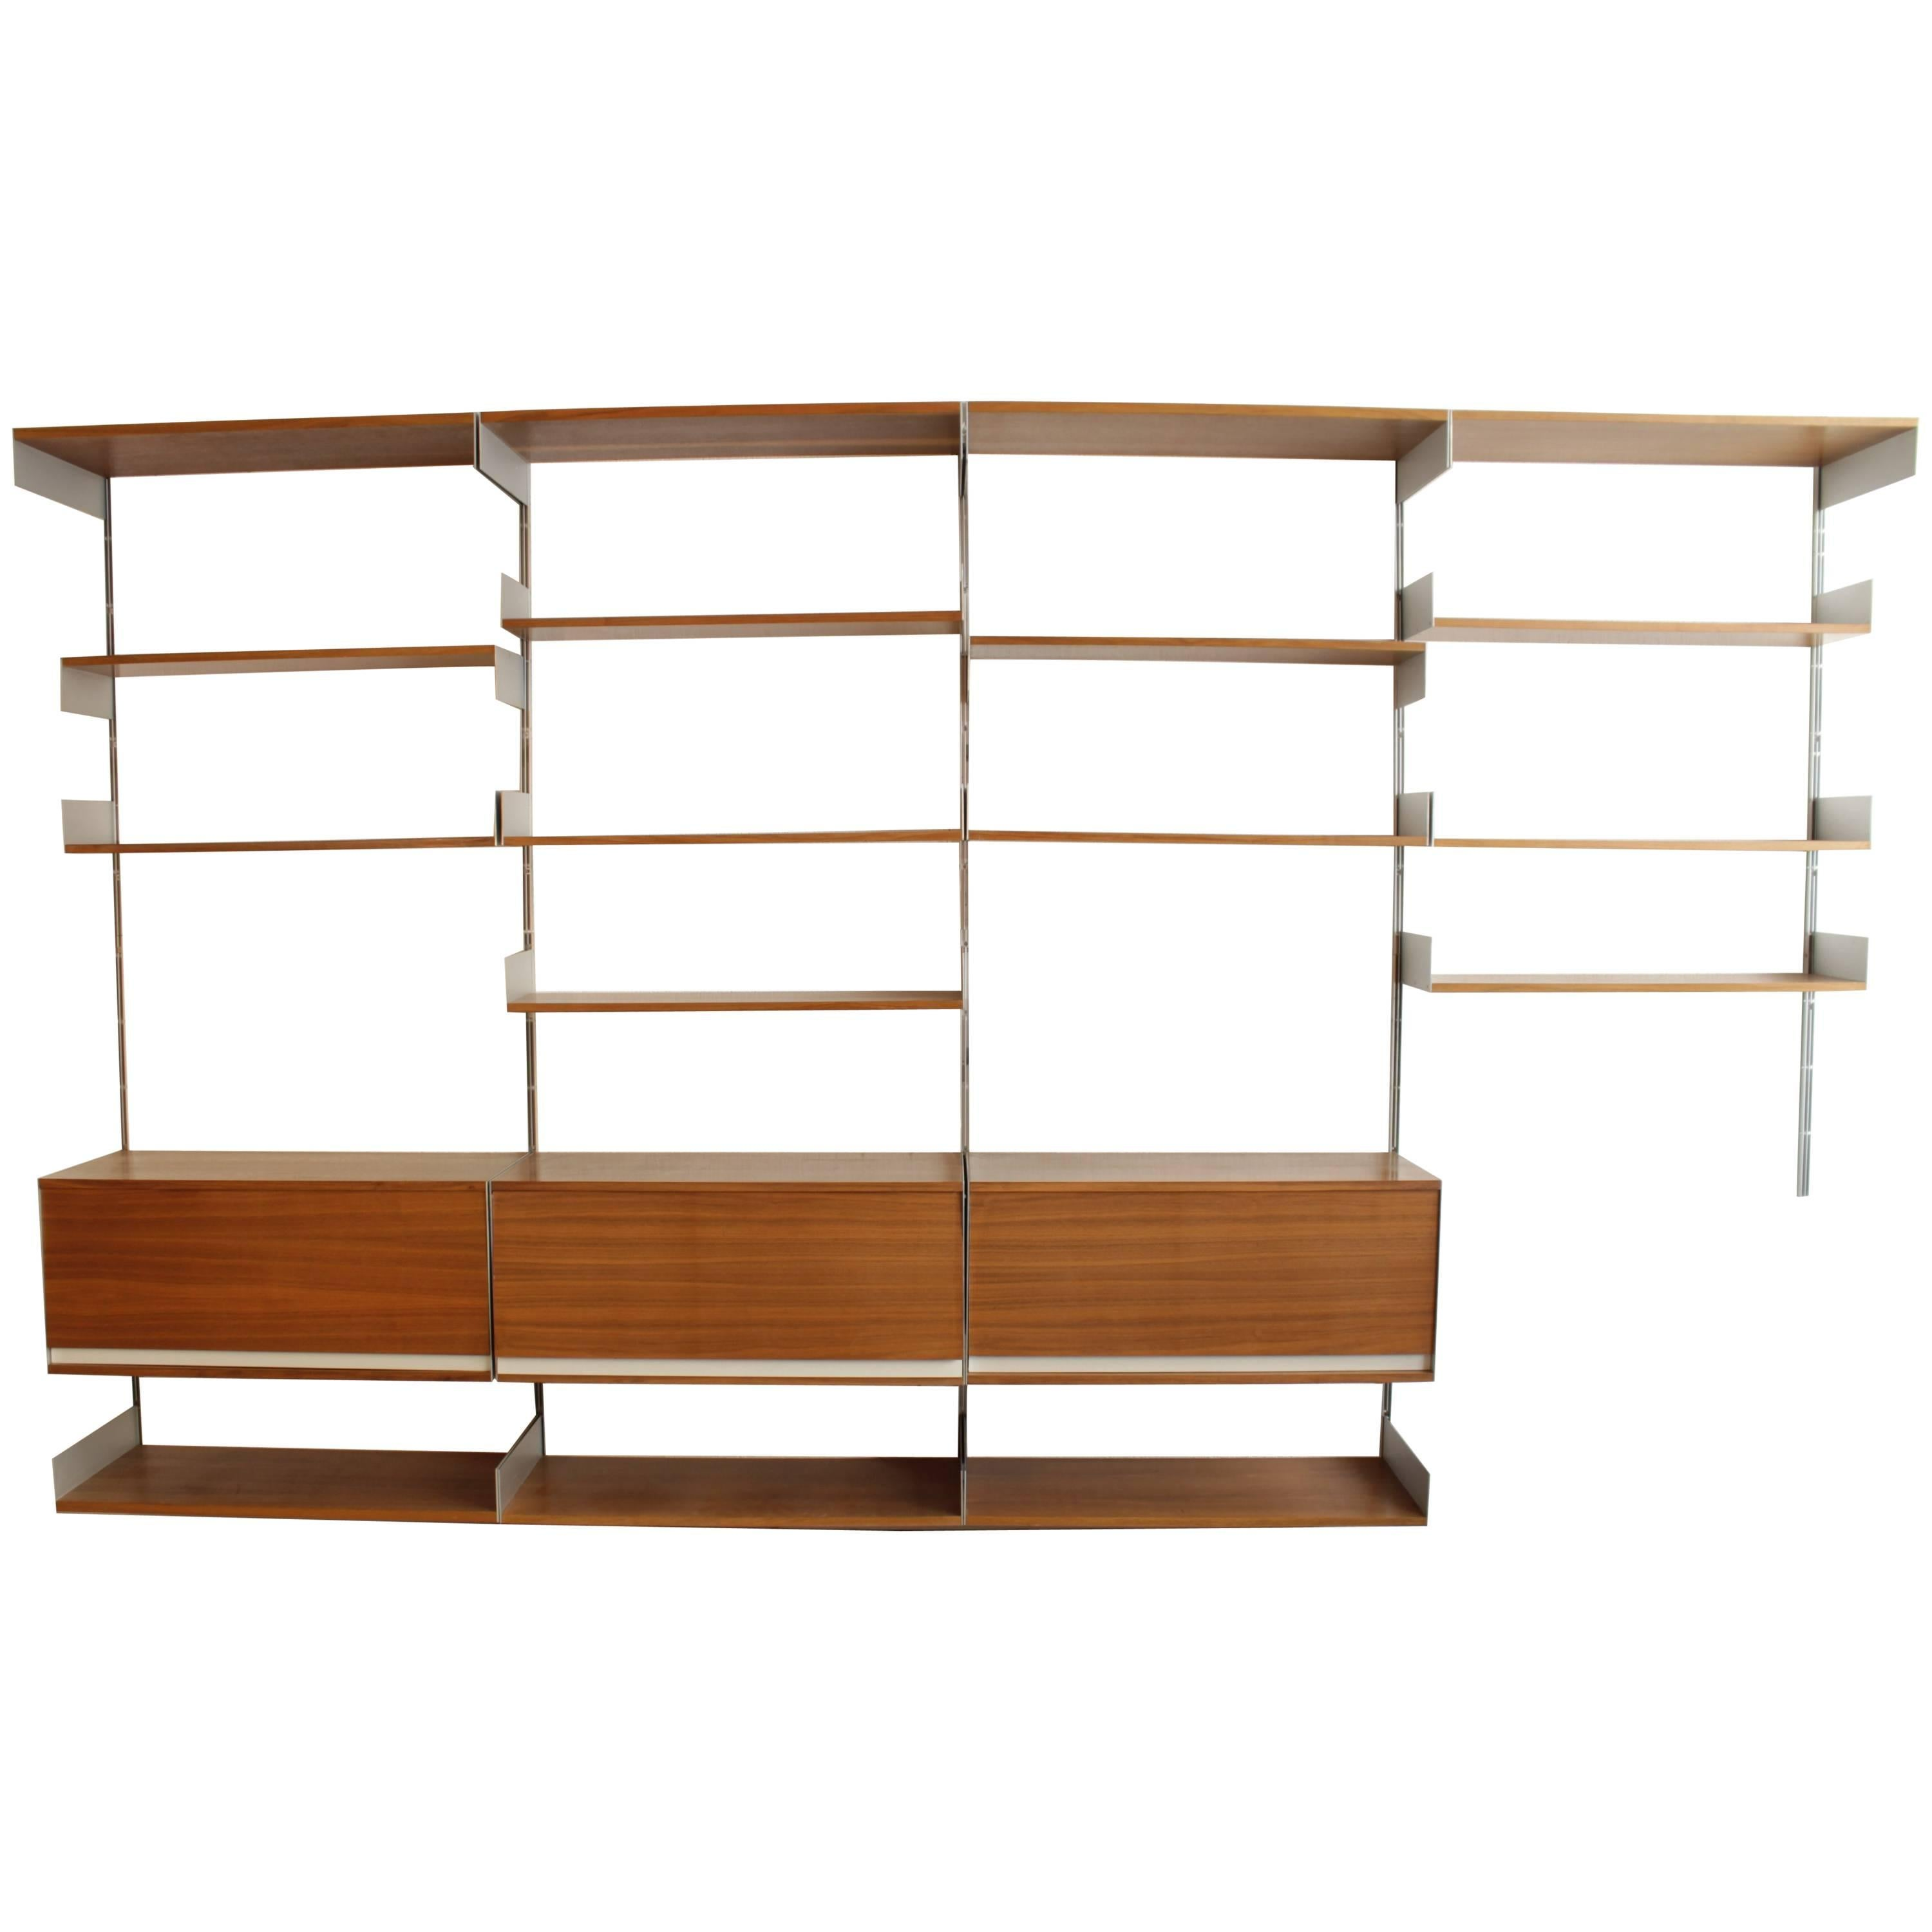 dieter rams walnut and aluminum universal shelving system for sale at 1stdibs